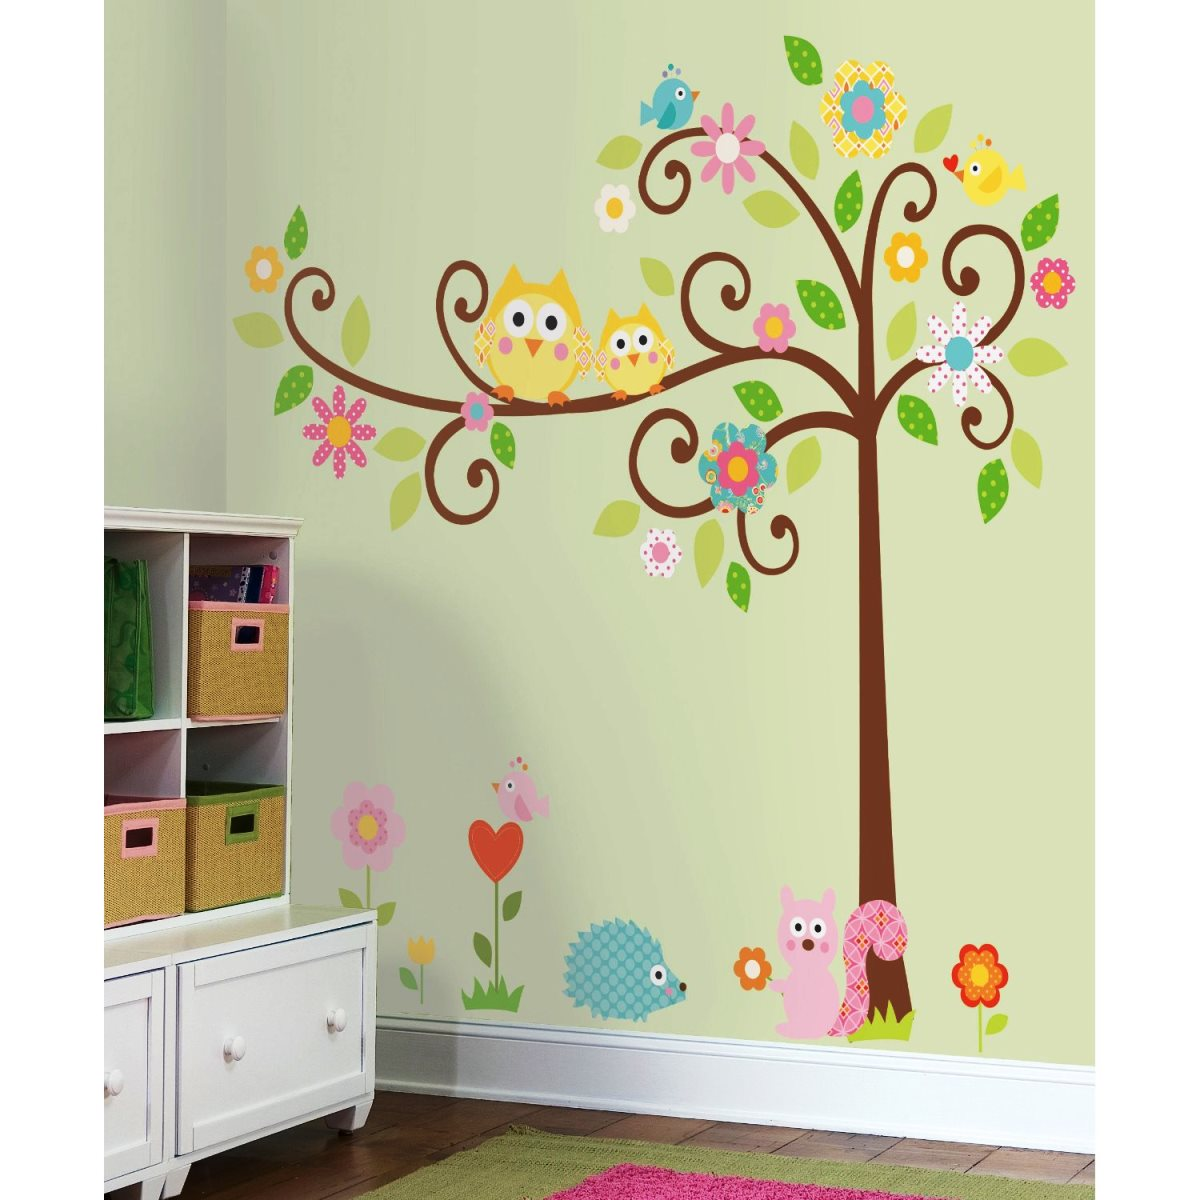 Wall Decorations Decoration Designs Guide